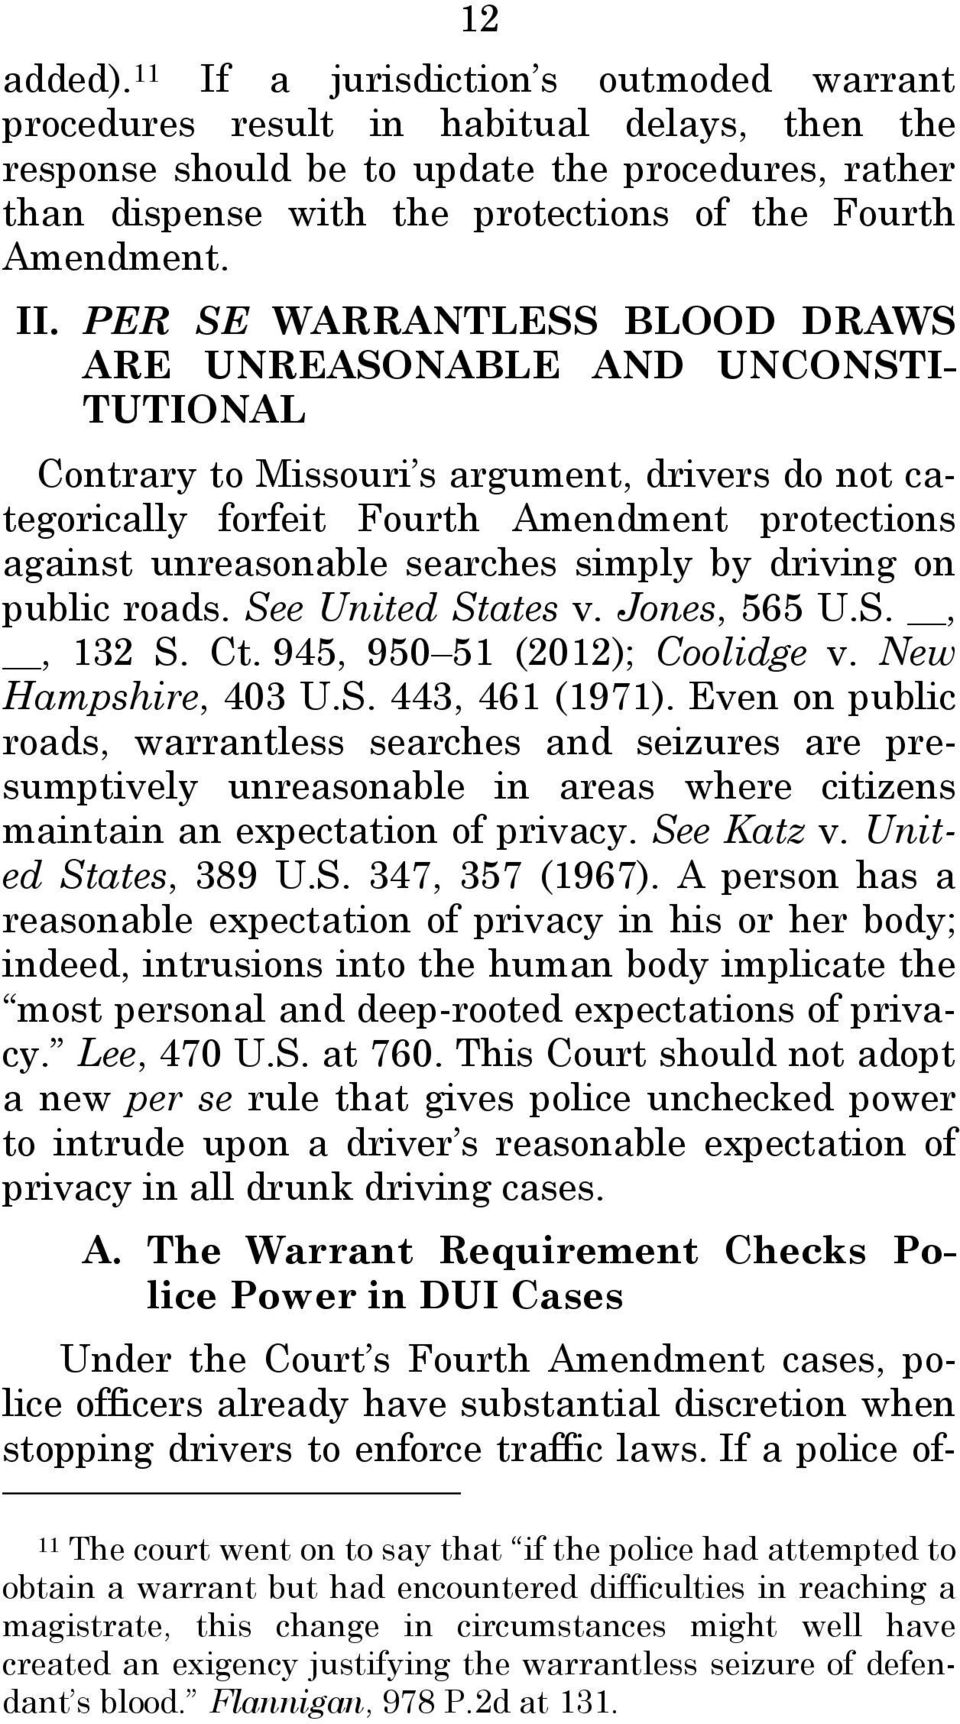 II. PER SE WARRANTLESS BLOOD DRAWS ARE UNREASONABLE AND UNCONSTI- TUTIONAL Contrary to Missouri s argument, drivers do not categorically forfeit Fourth Amendment protections against unreasonable